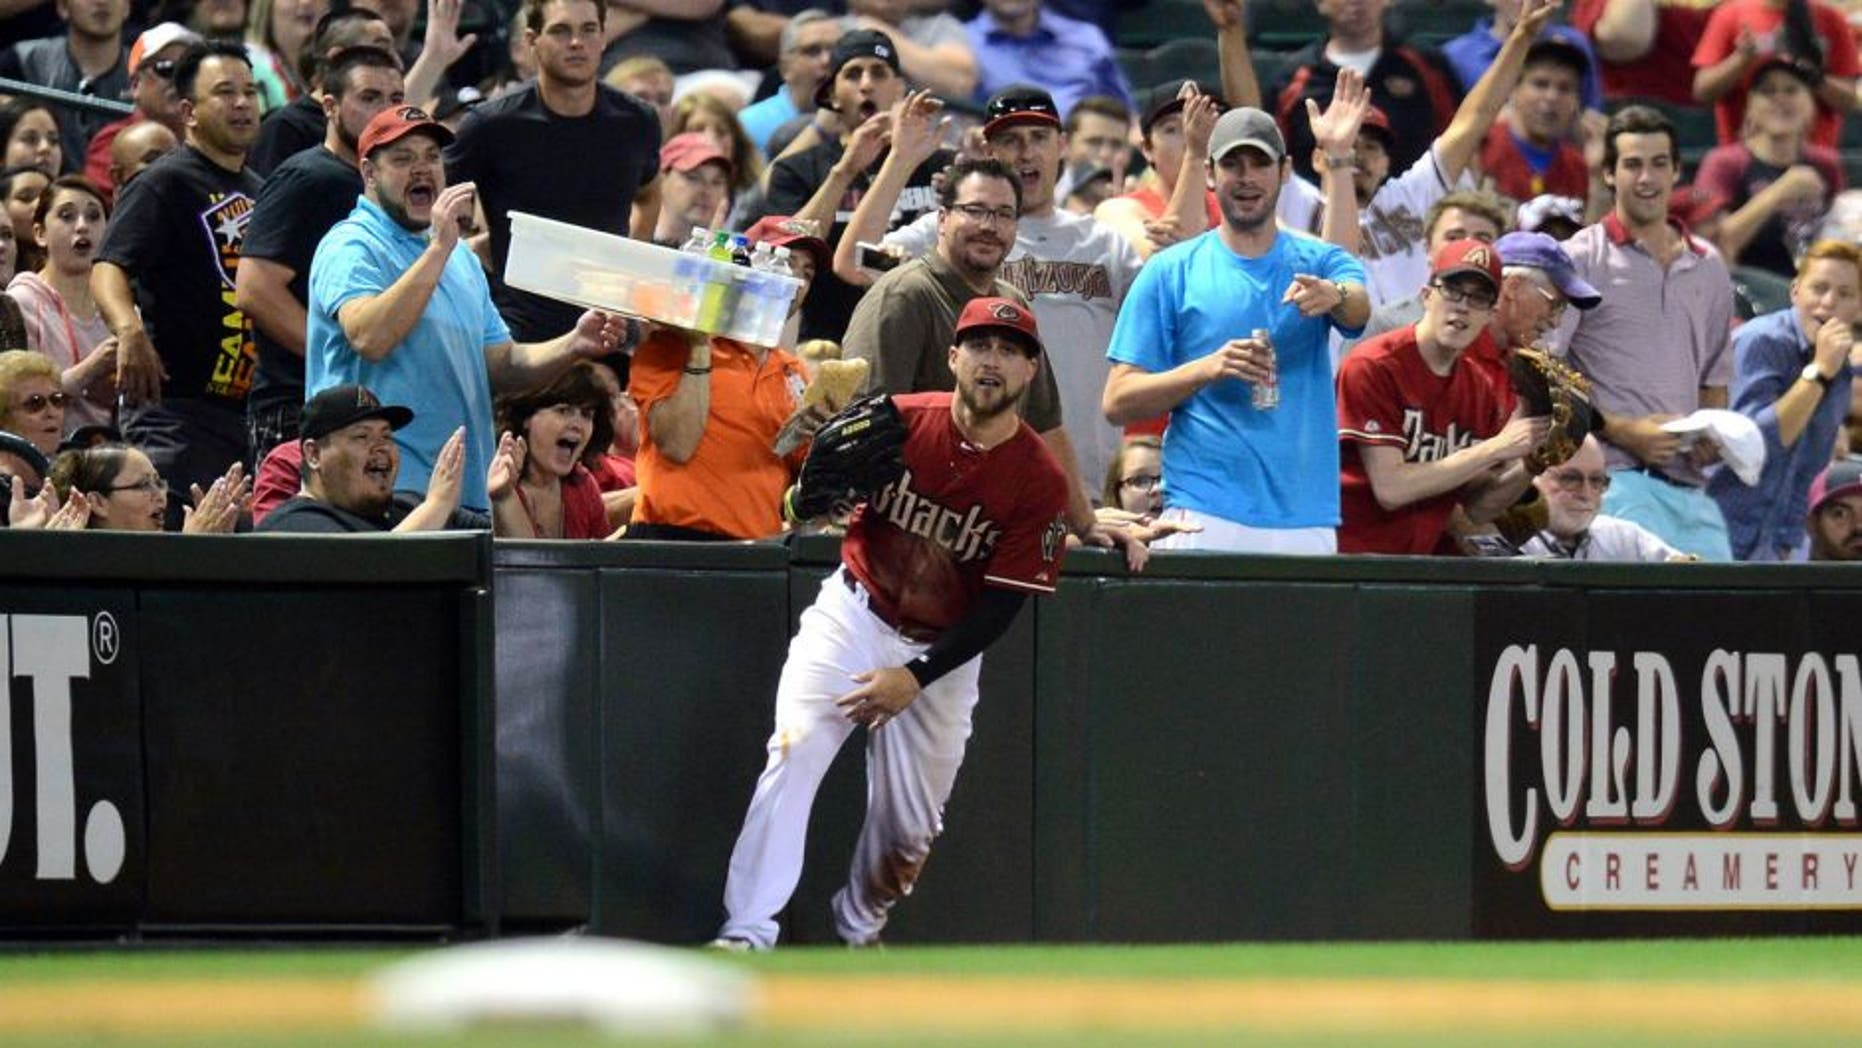 Apr 22, 2015; Phoenix, AZ, USA; Fans react to a sliding catch by Arizona Diamondbacks center fielder Ender Inciarte (5) during the fourth inning against the Texas Rangers at Chase Field. Mandatory Credit: Joe Camporeale-USA TODAY Sports